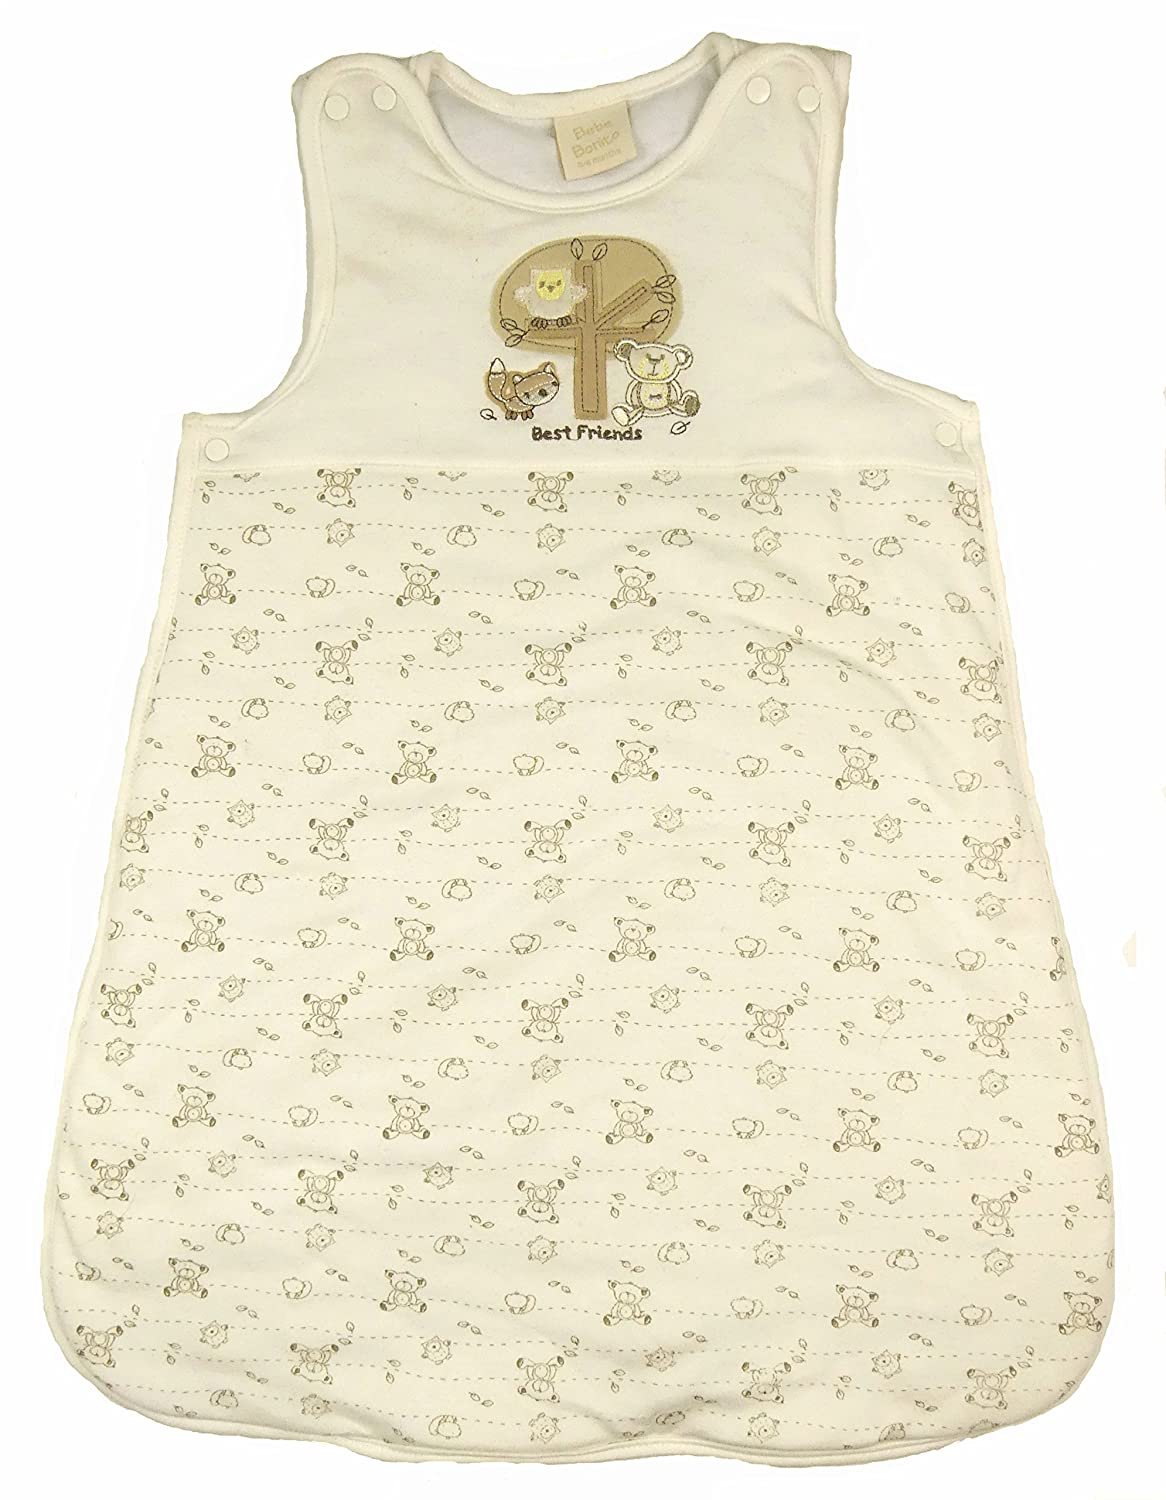 Bebe Bobito Sleeping Bags 2.5 Tog Soft Cotton Jersey (Off White Ditsy Mouse, 6-12 Months) Bebe Bonito